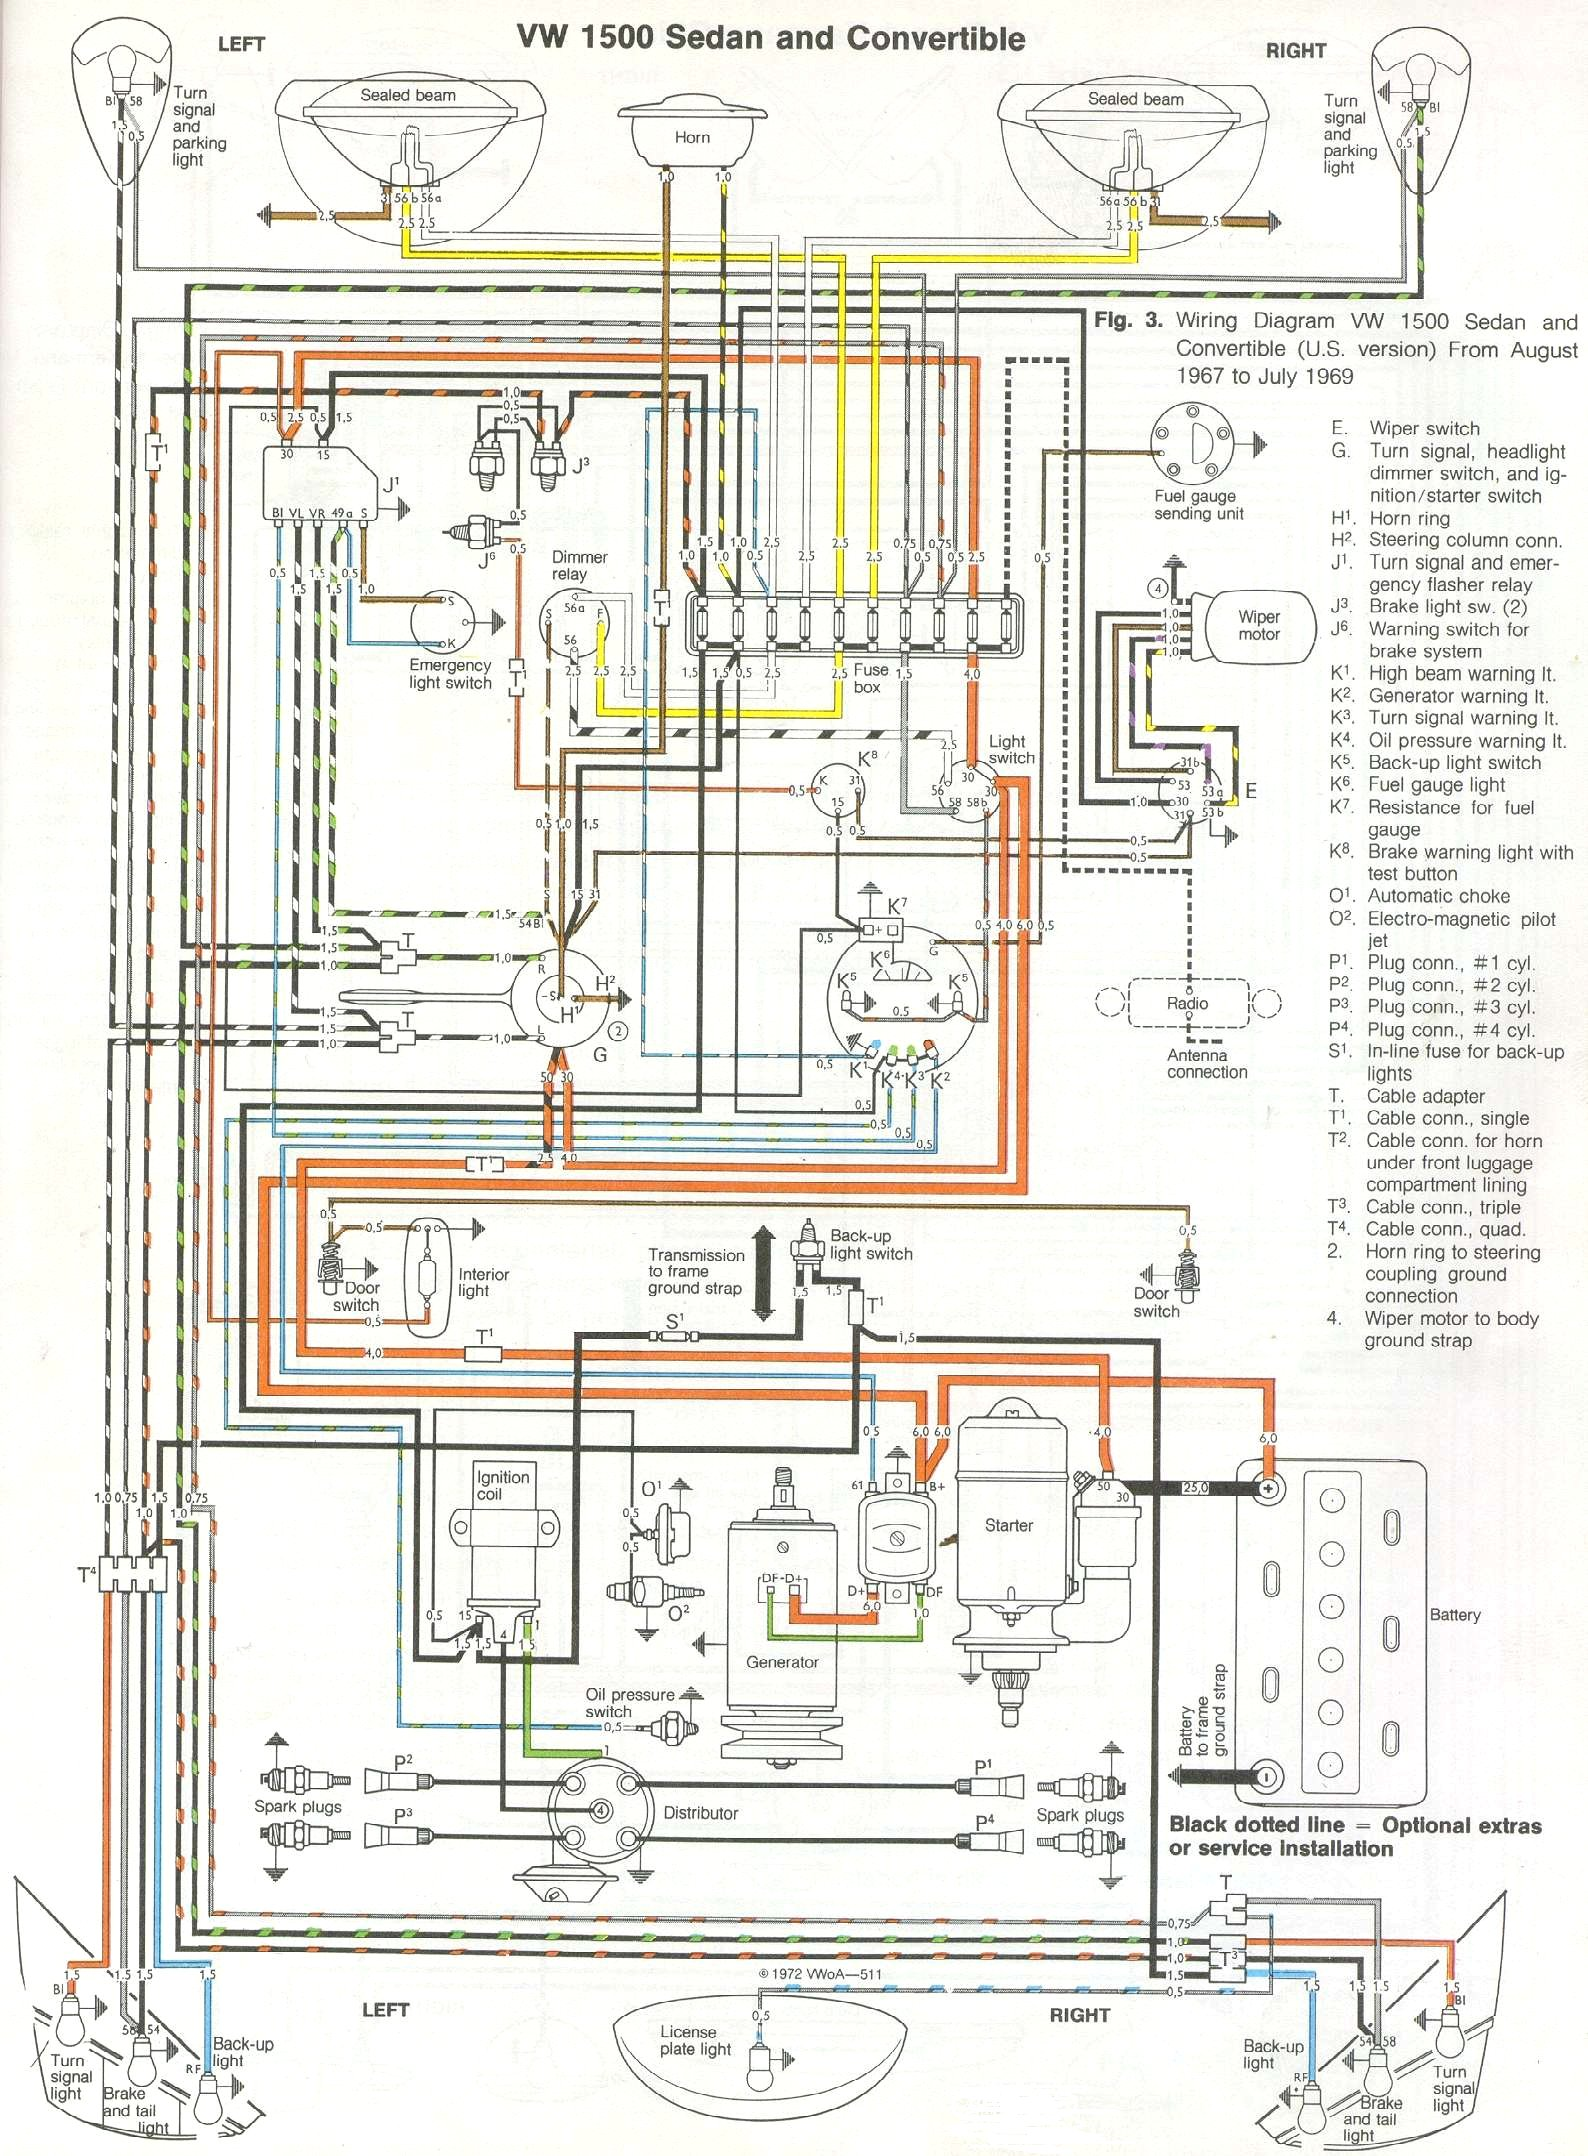 bug_6869 1969 71 beetle wiring diagram thegoldenbug com vw beetle wiring diagram at couponss.co